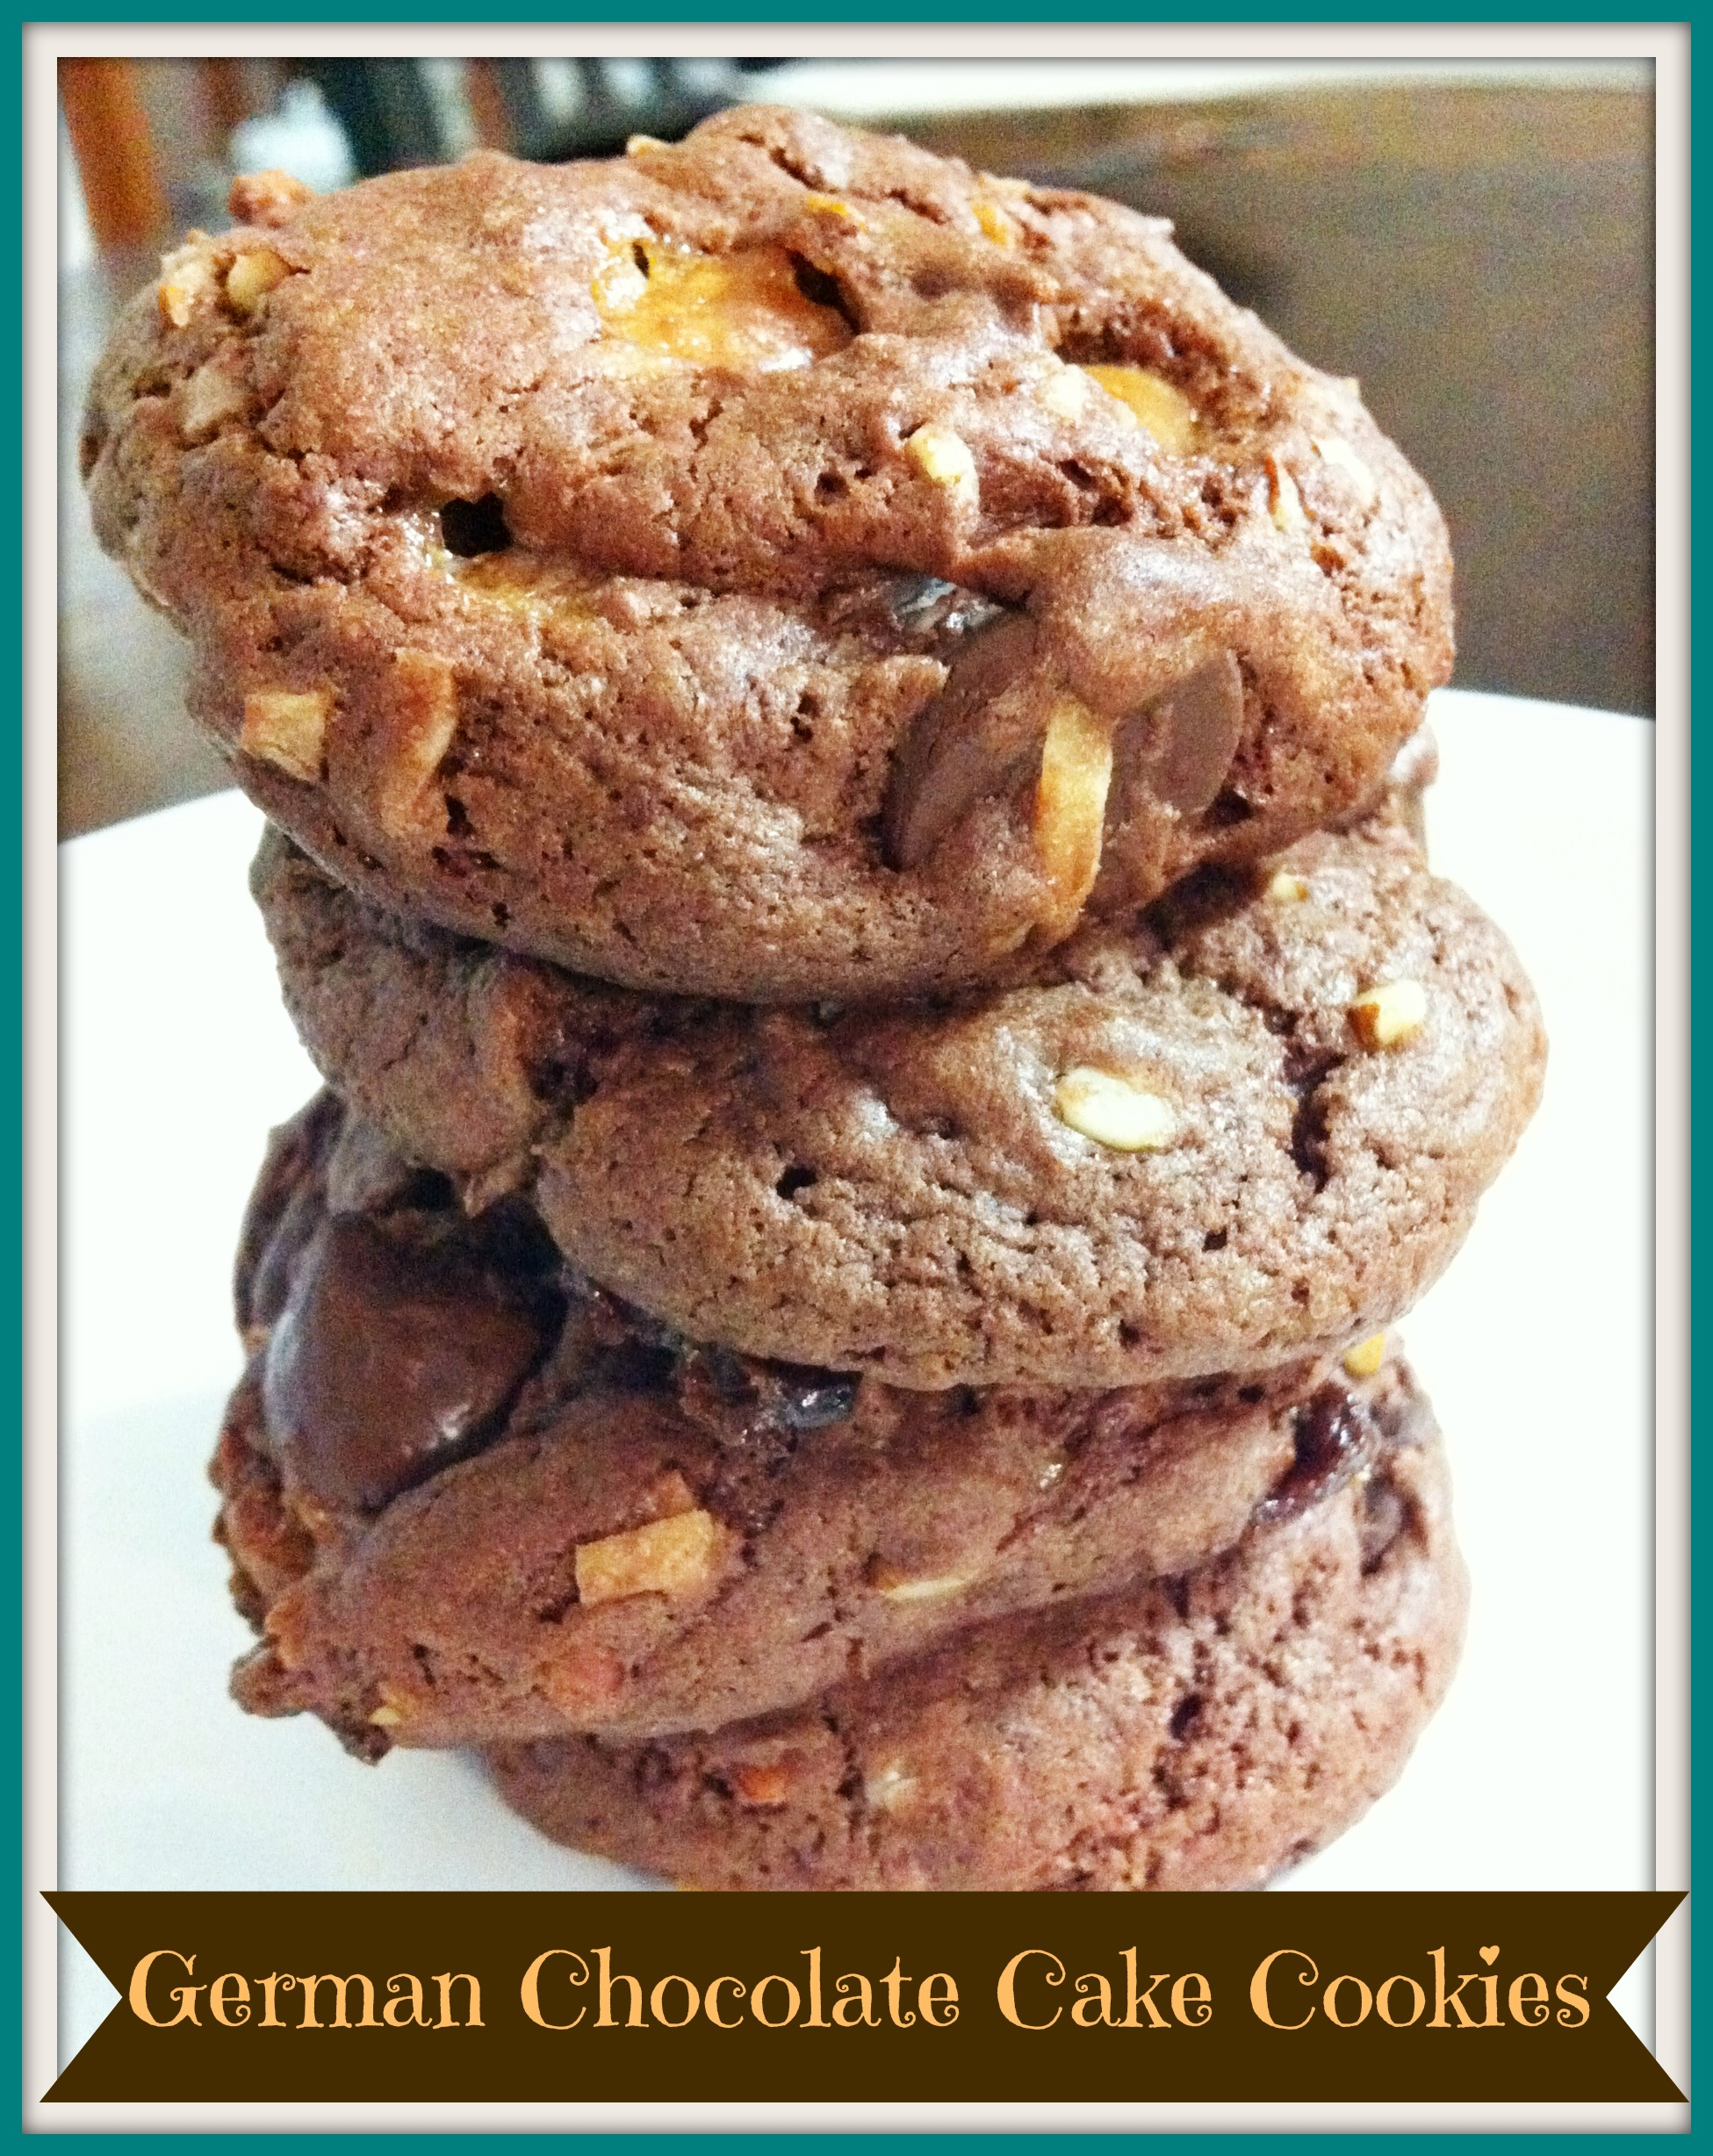 Cake Mix Cookies: German Chocolate - The Coers Family